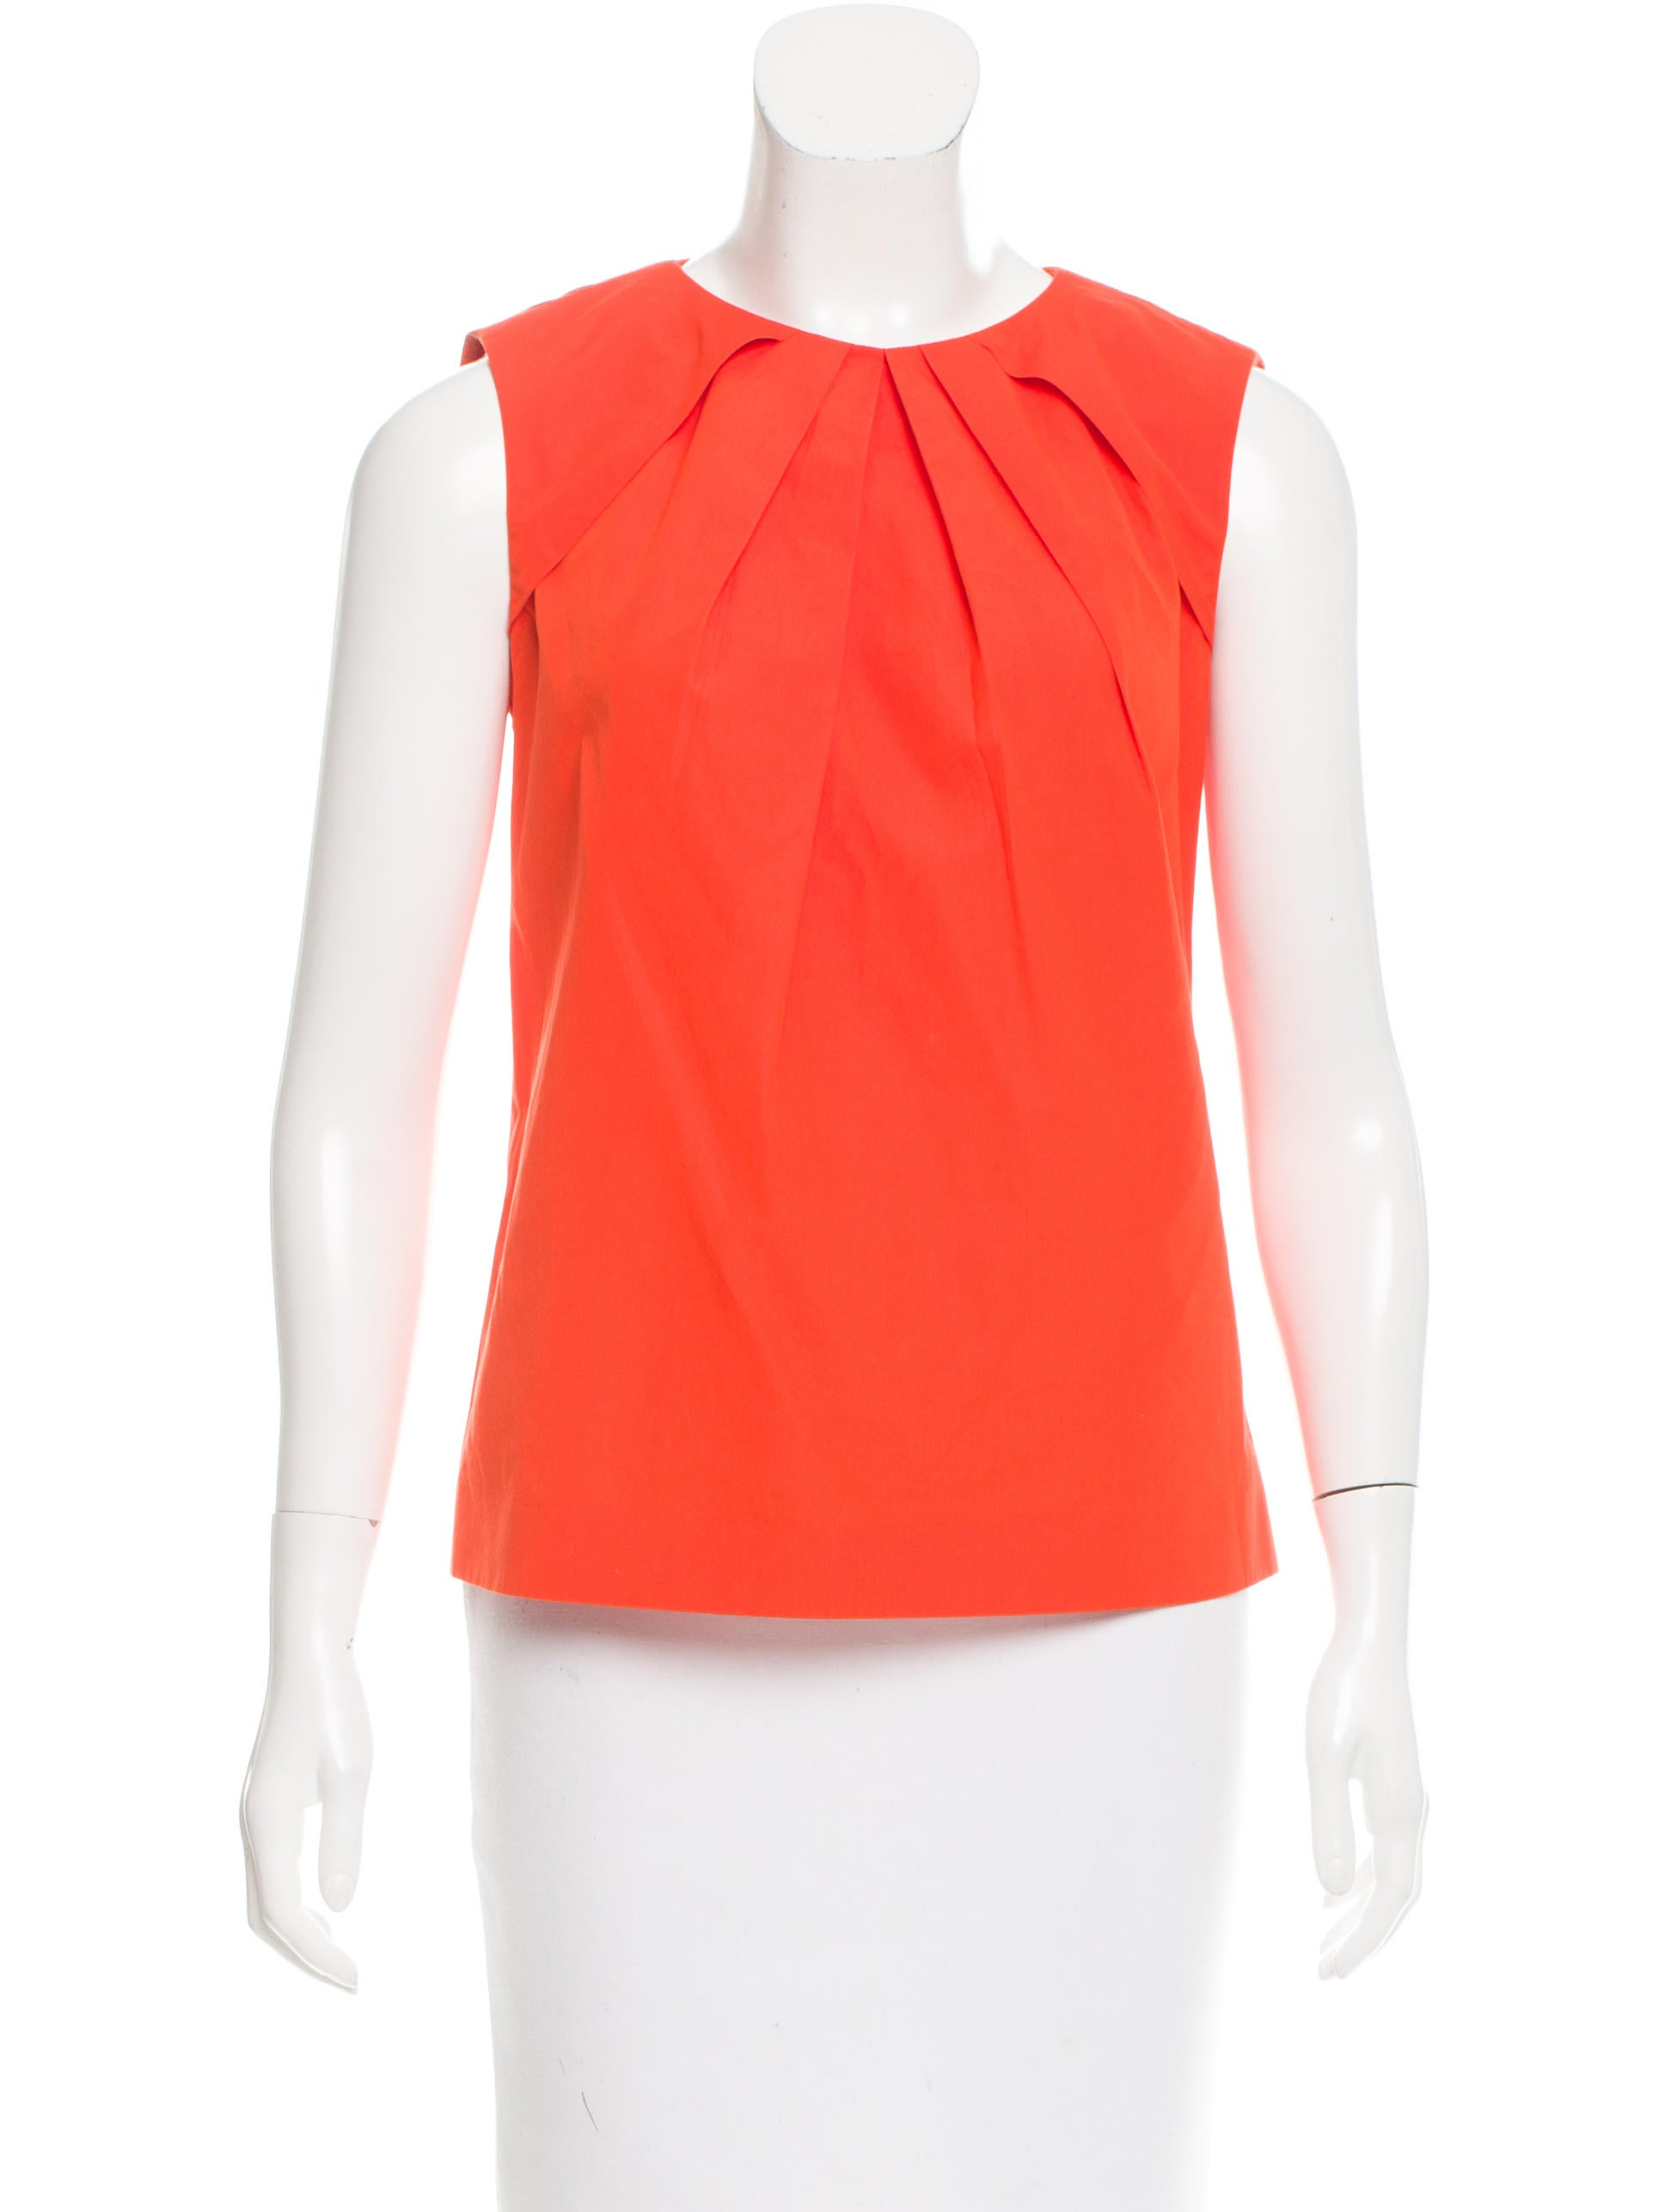 Joseph Pleat Accented Sleeveless Top Clothing JOS23686  : JOS236861enlarged from www.therealreal.com size 1951 x 2574 jpeg 145kB